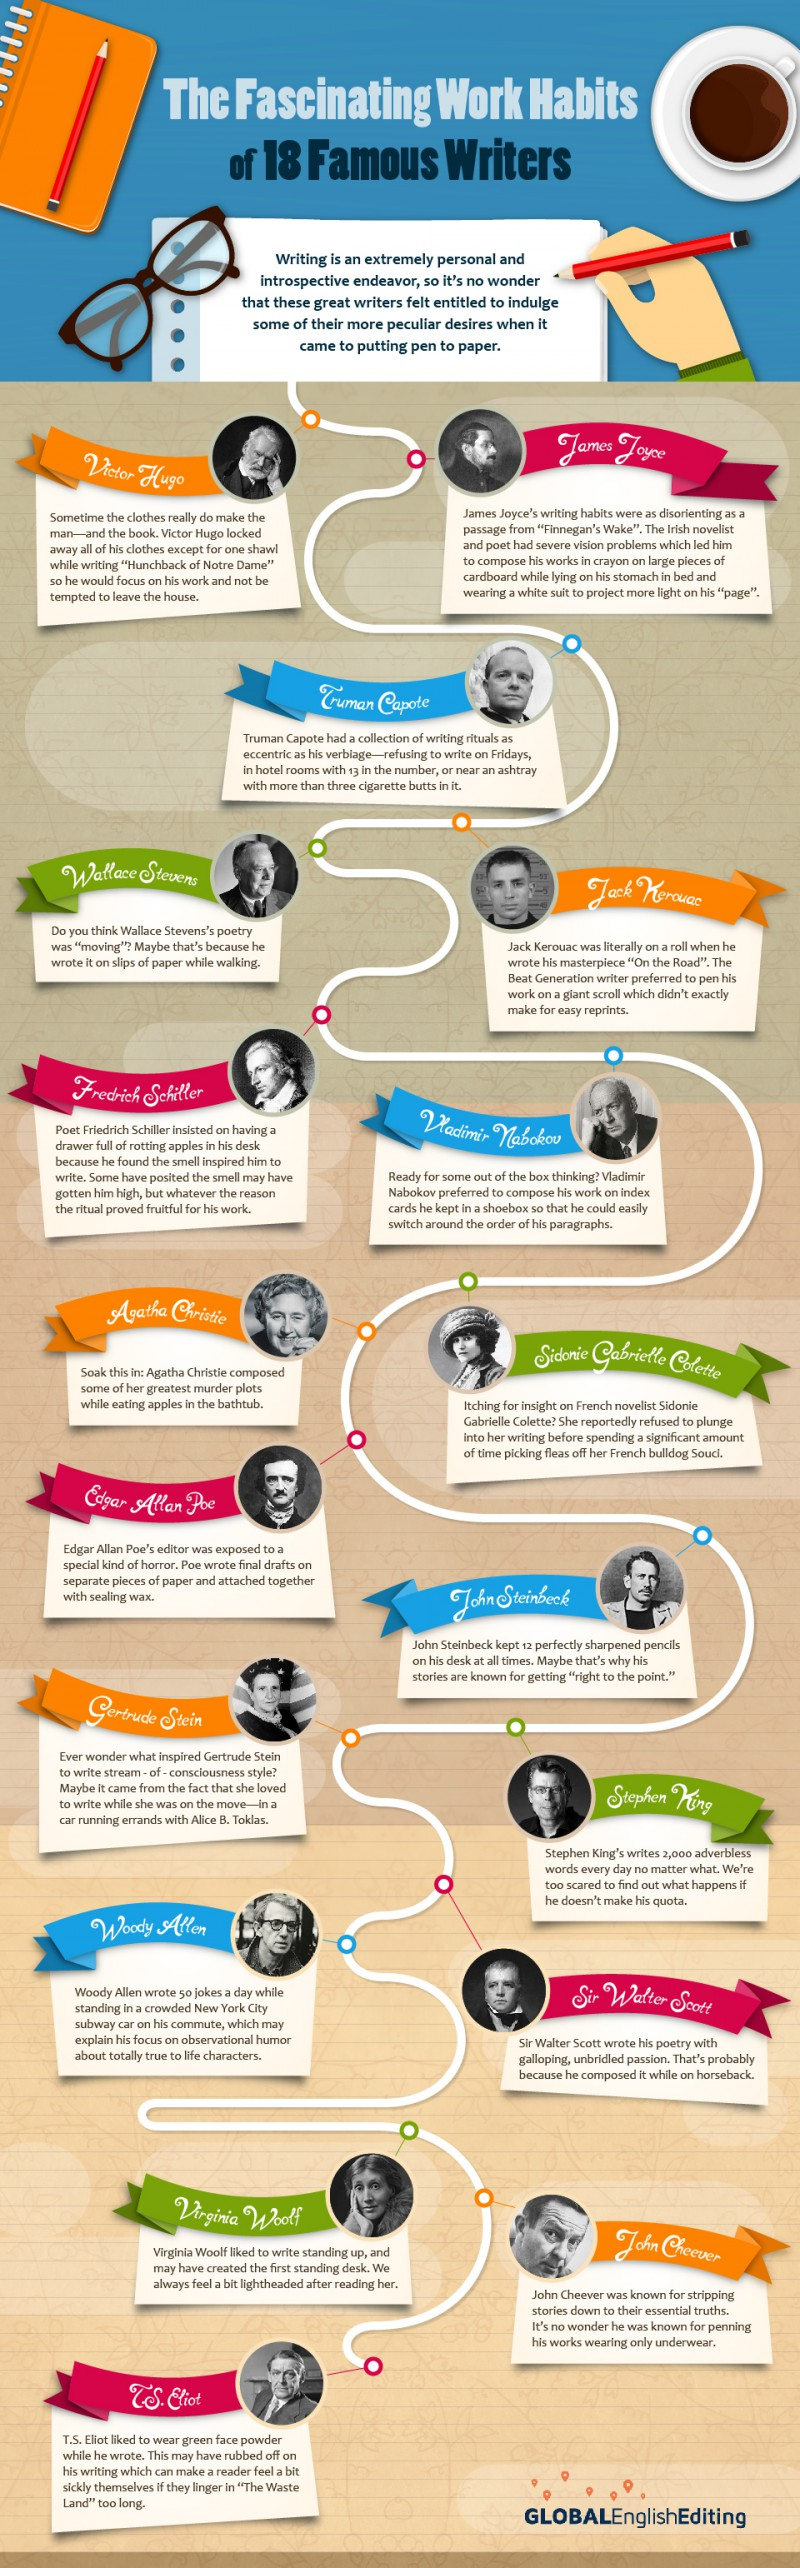 unusual habits of famous writers